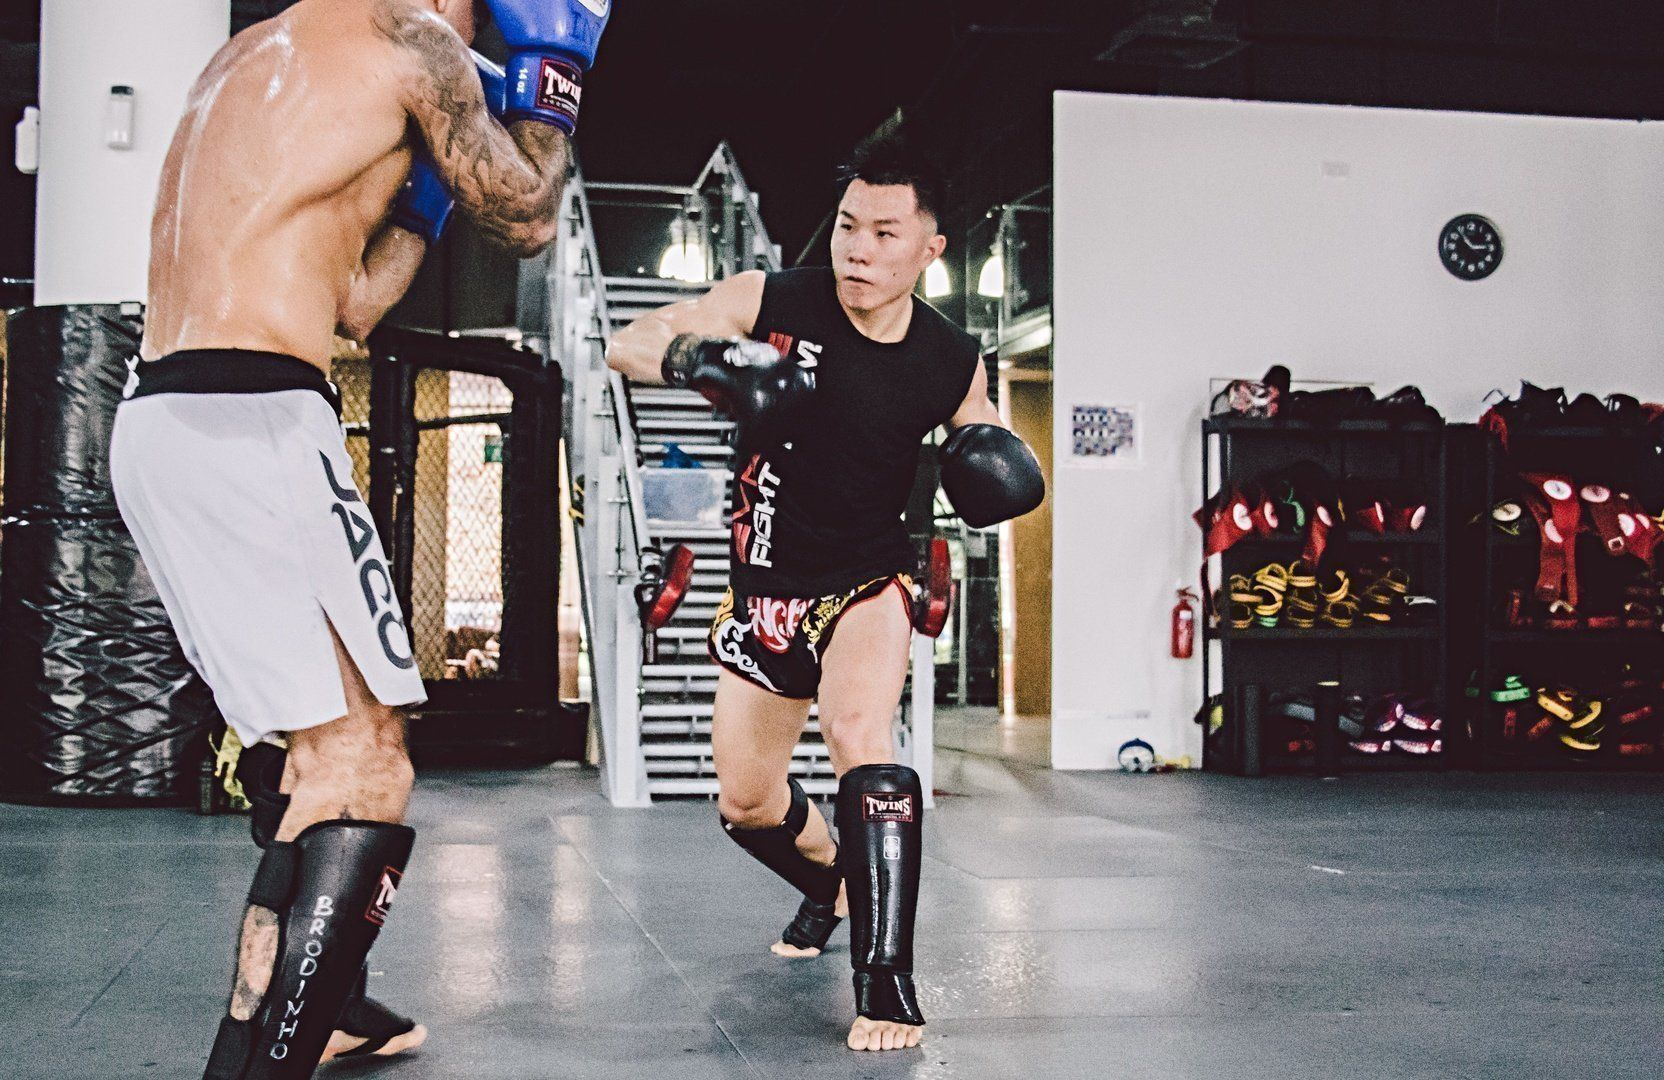 Many Muay Thai practitioners place emphasis on training their core so that they are able to absorb a body shot.